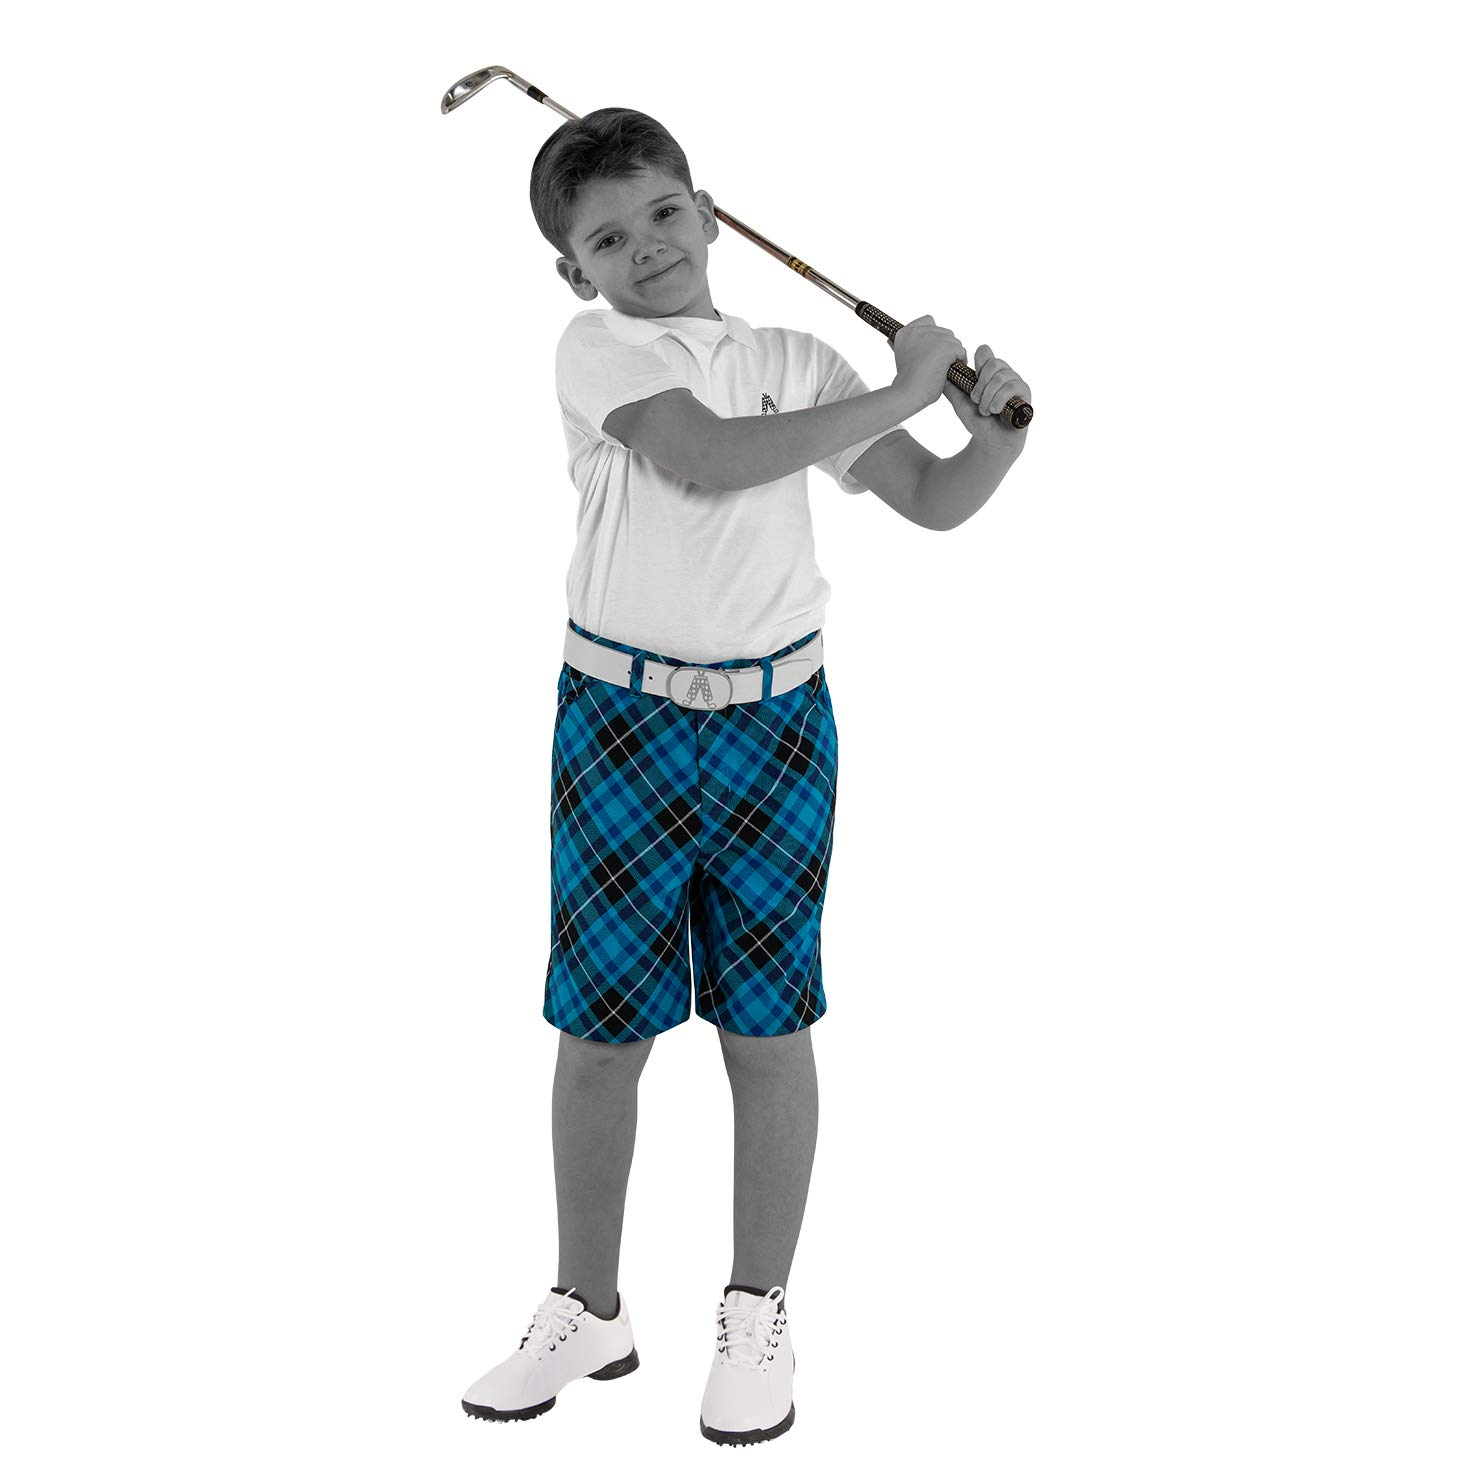 Royal & Awesome Kids Blue Plaid Bright Golf Shorts - X-Small Age 6-7 Years by Royal & Awesome